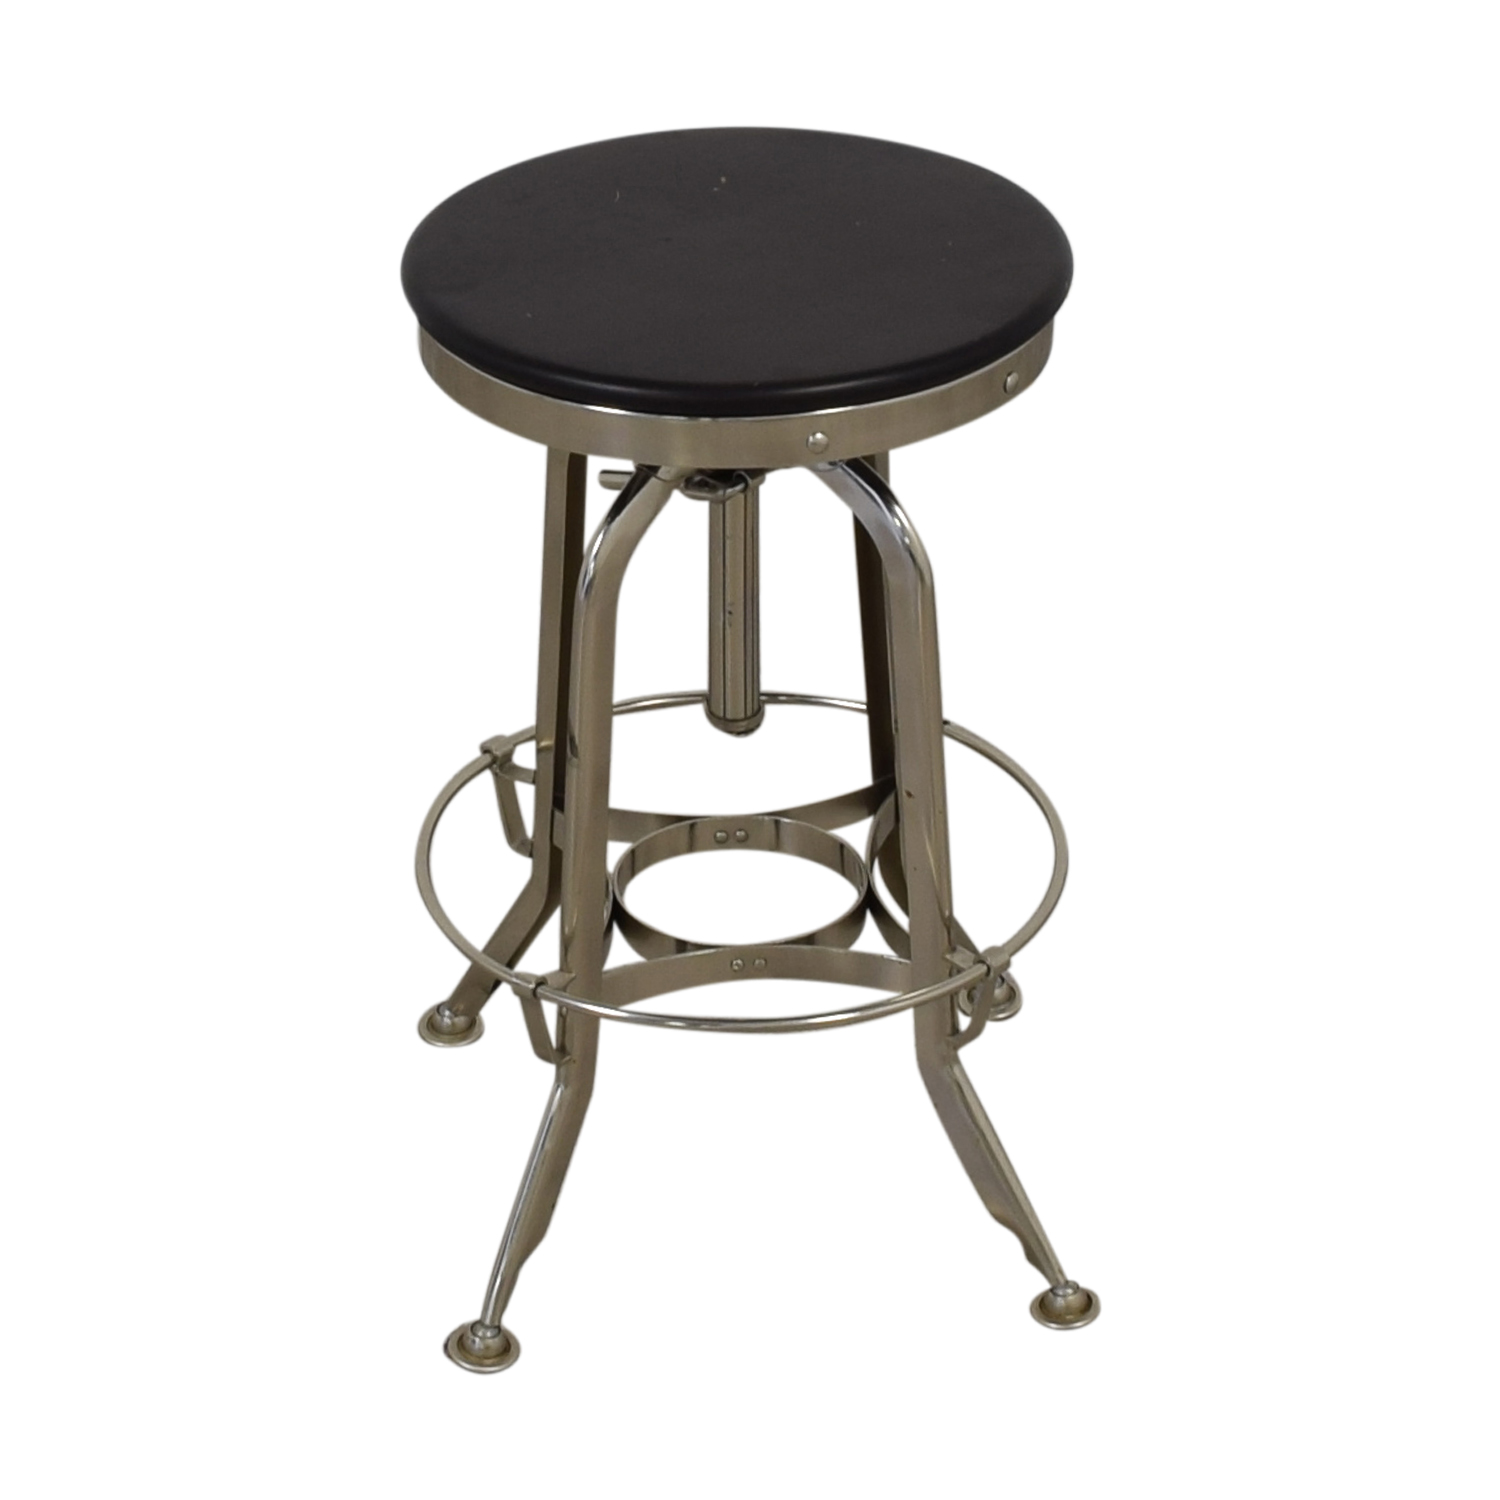 Restoration Hardware Restoration Hardware 1940s Vintage Toledo Bar Stool for sale